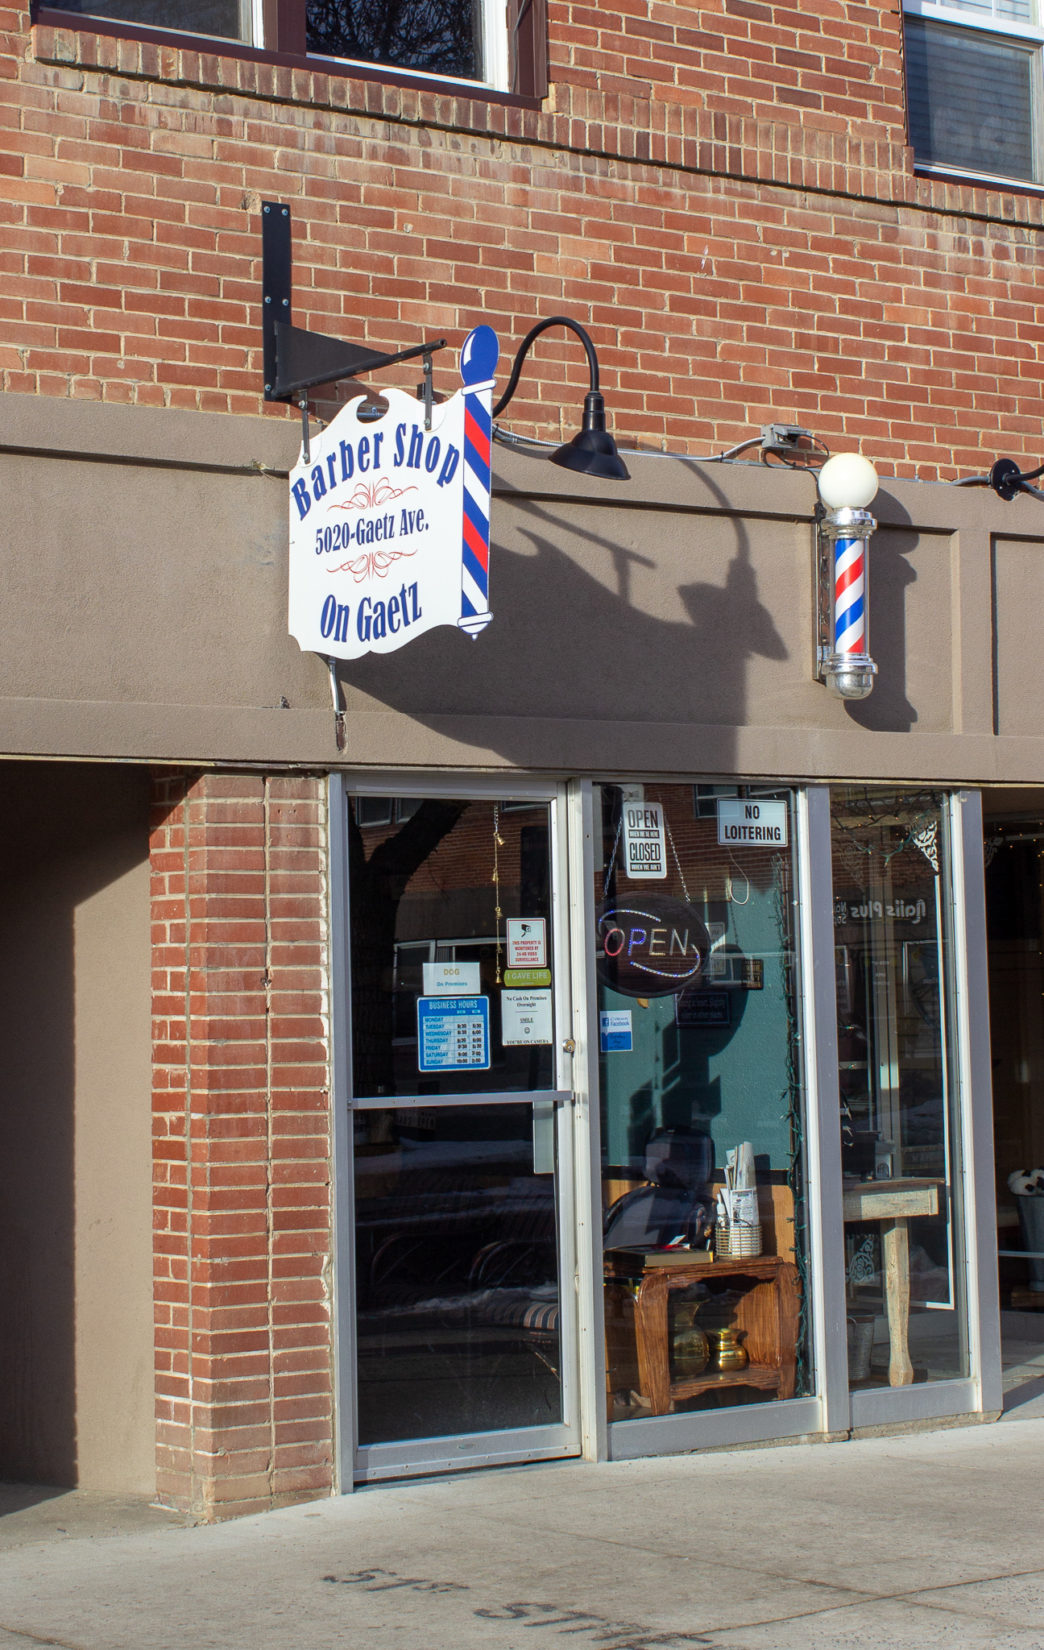 Business Spotlight – Barbershop on Gaetz